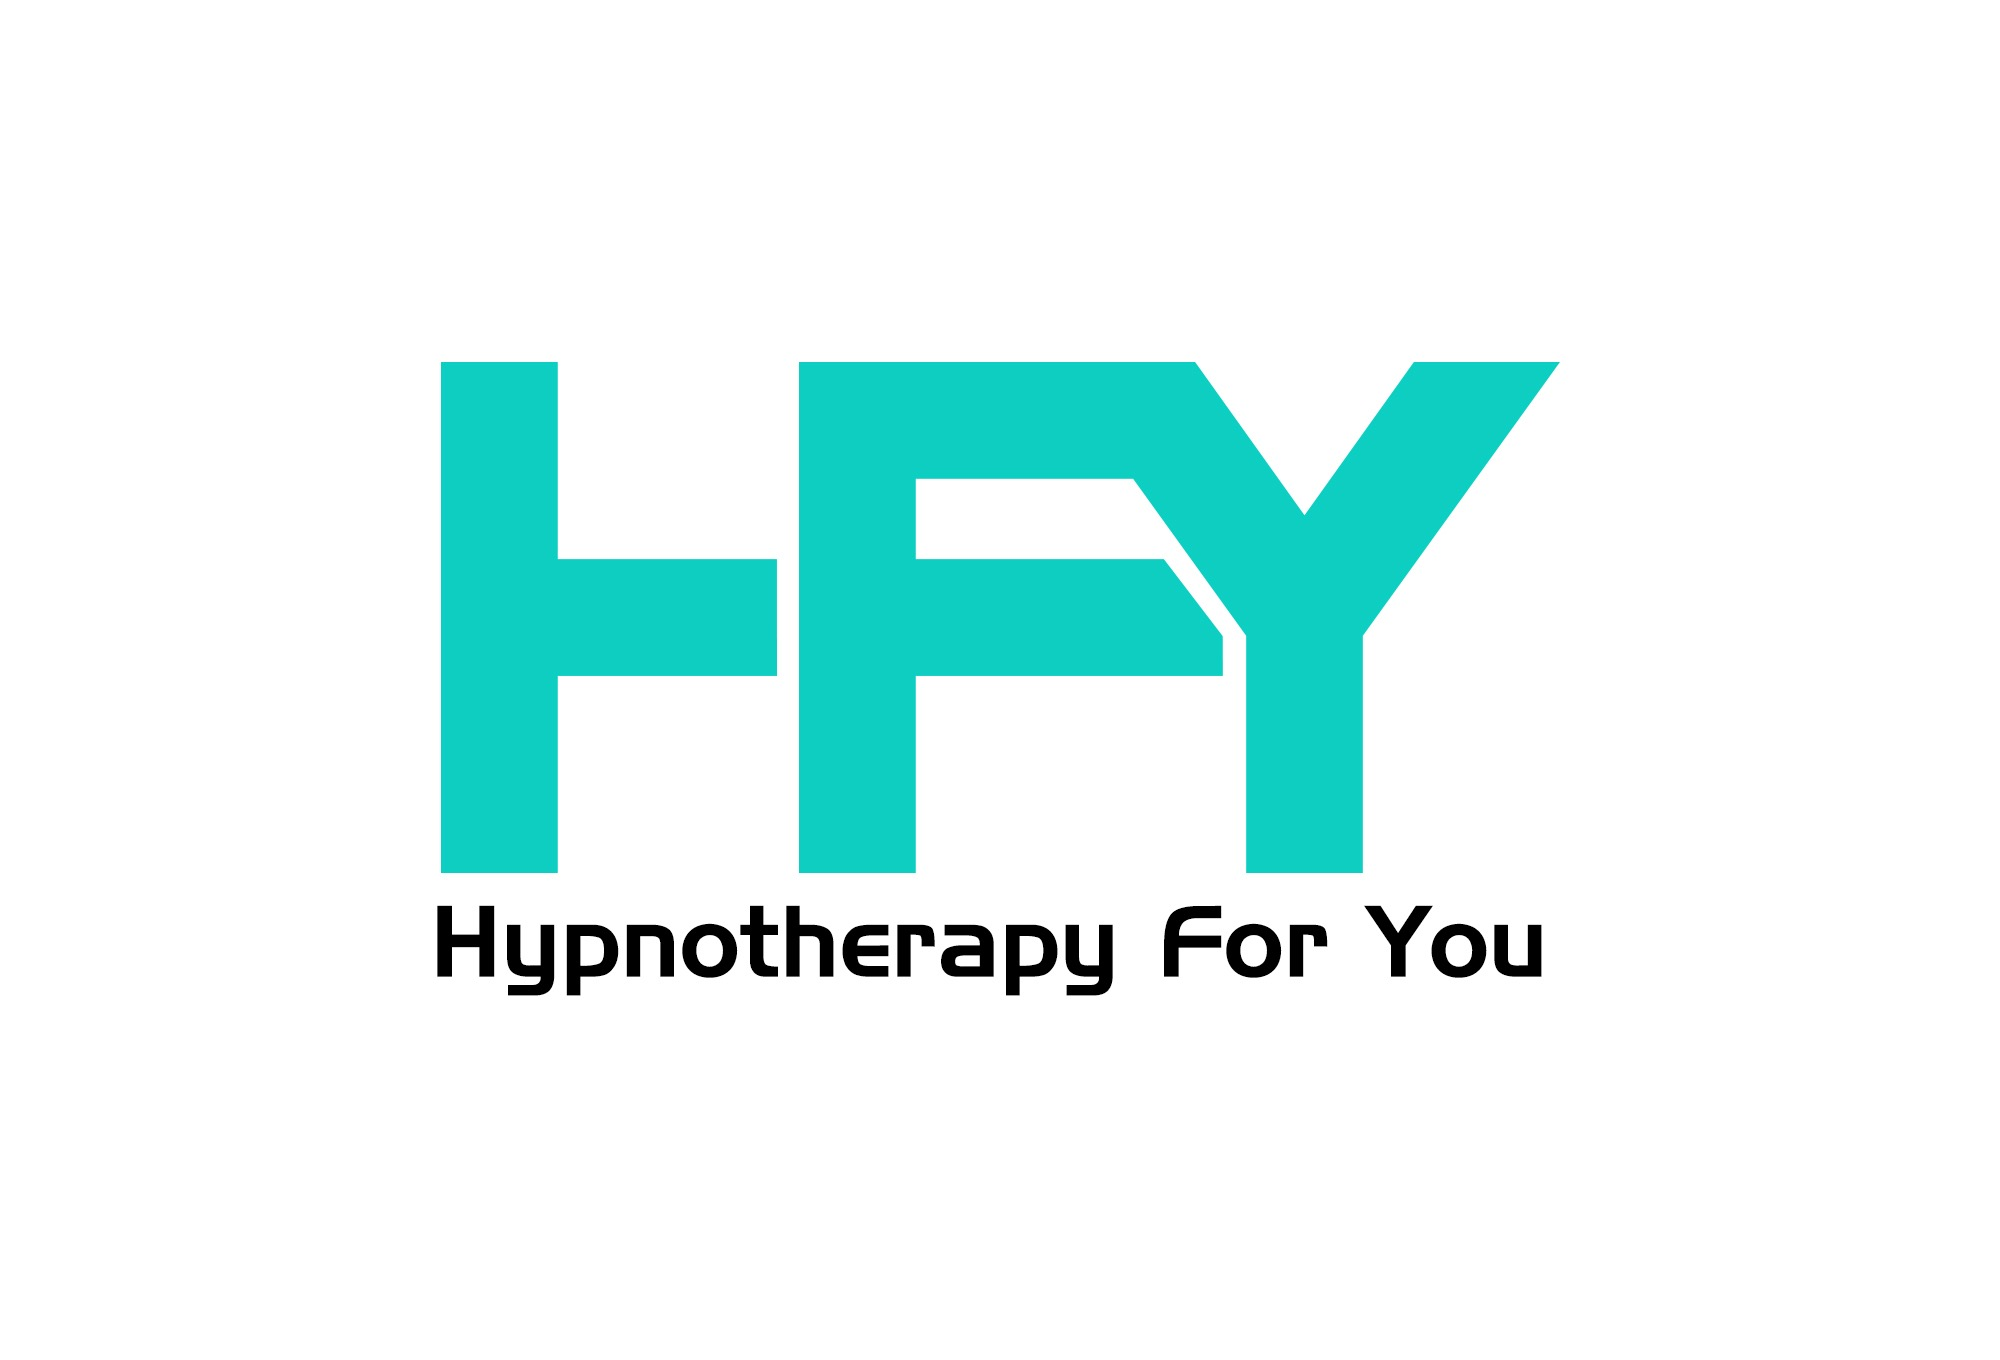 Hypnotherapy For You